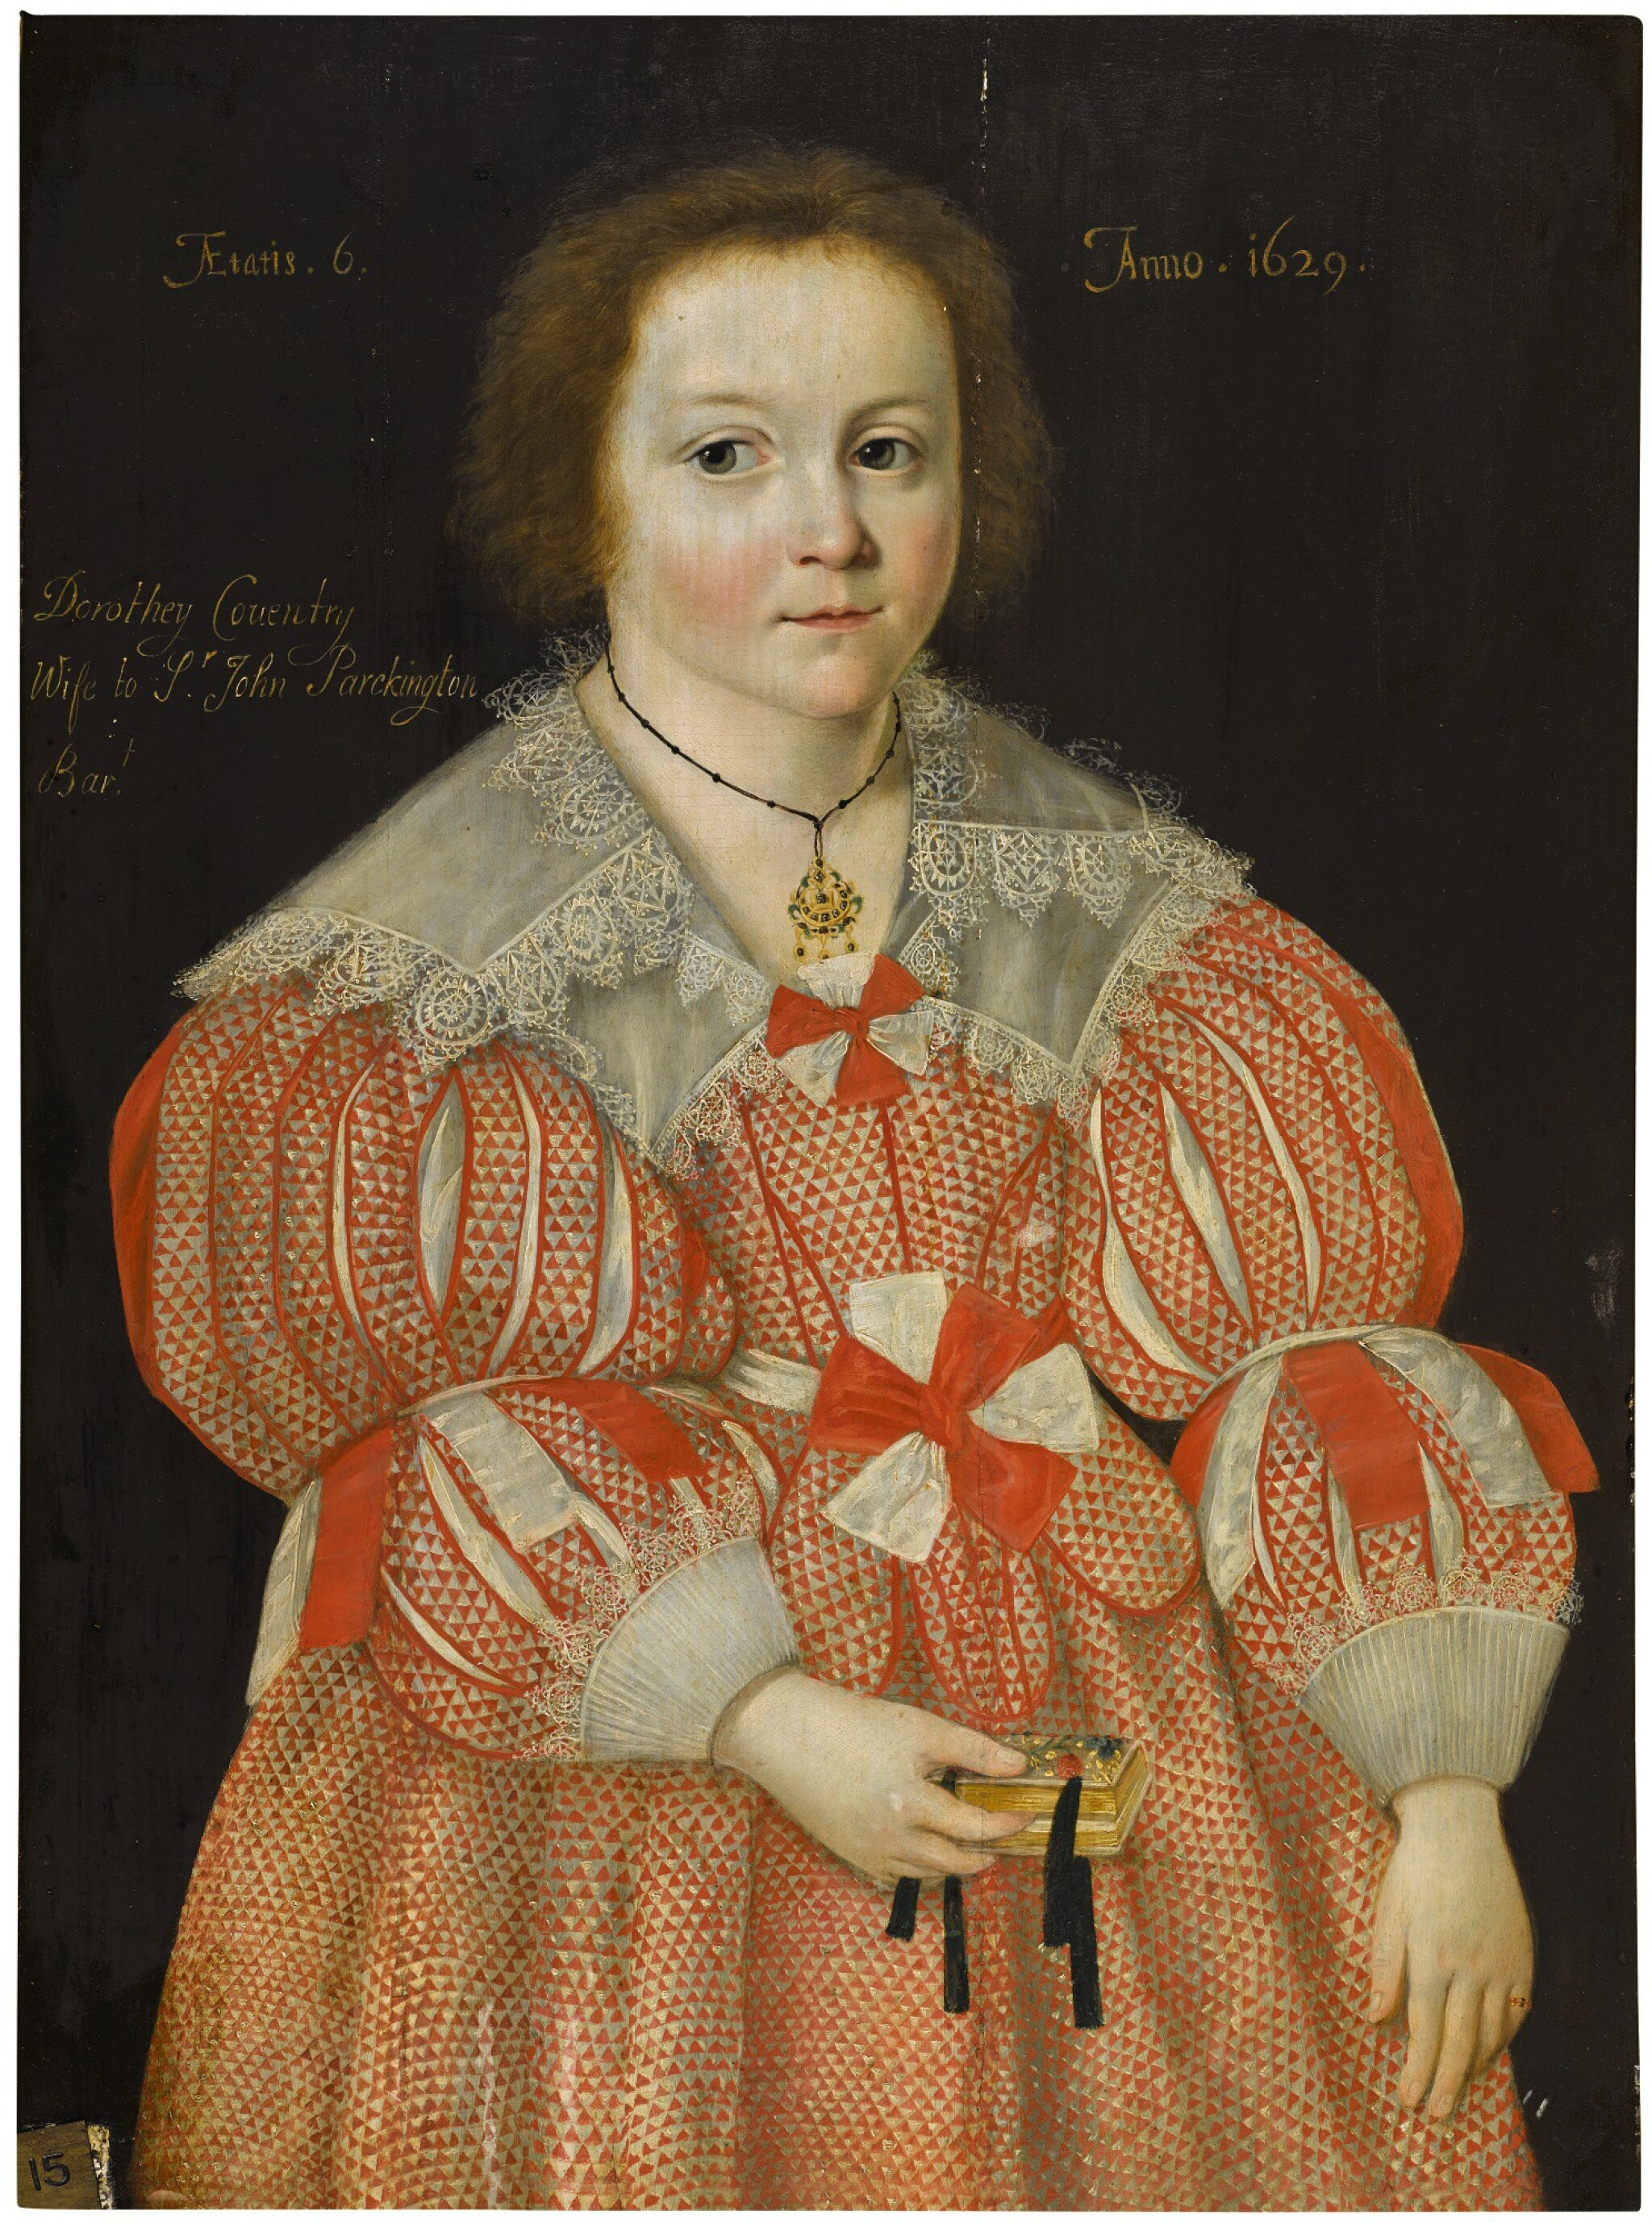 View full screen - View 1 of Lot 25. Portrait of Dorothy Coventry, later Lady Packington (1623-1679), when a child.